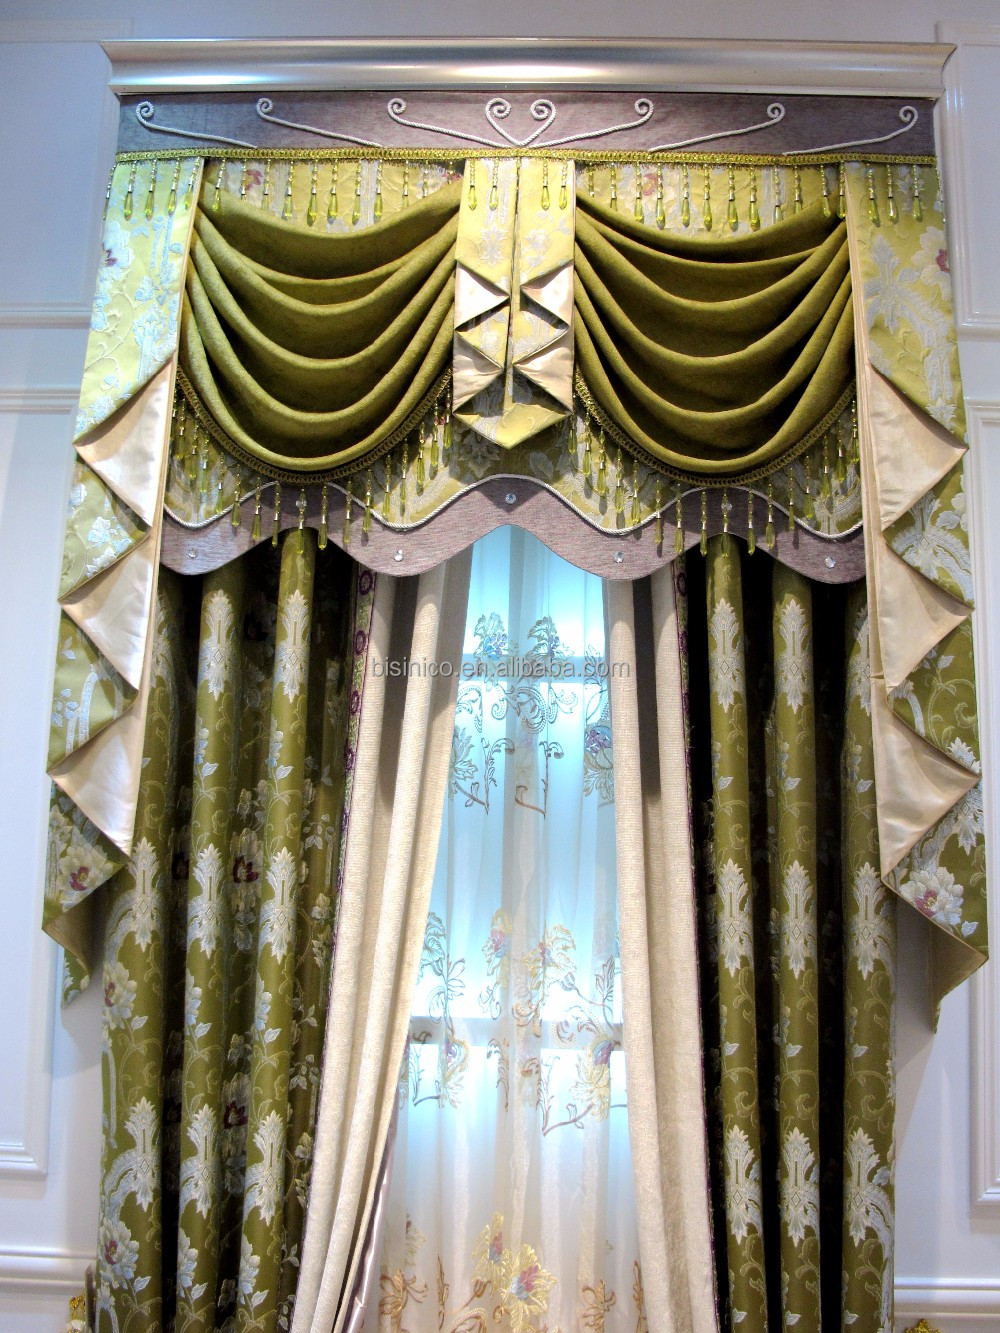 2016 New Design Luxury European Style Embroidery Window Curtains/Popular Green Refreshing Look Curtain Fabric